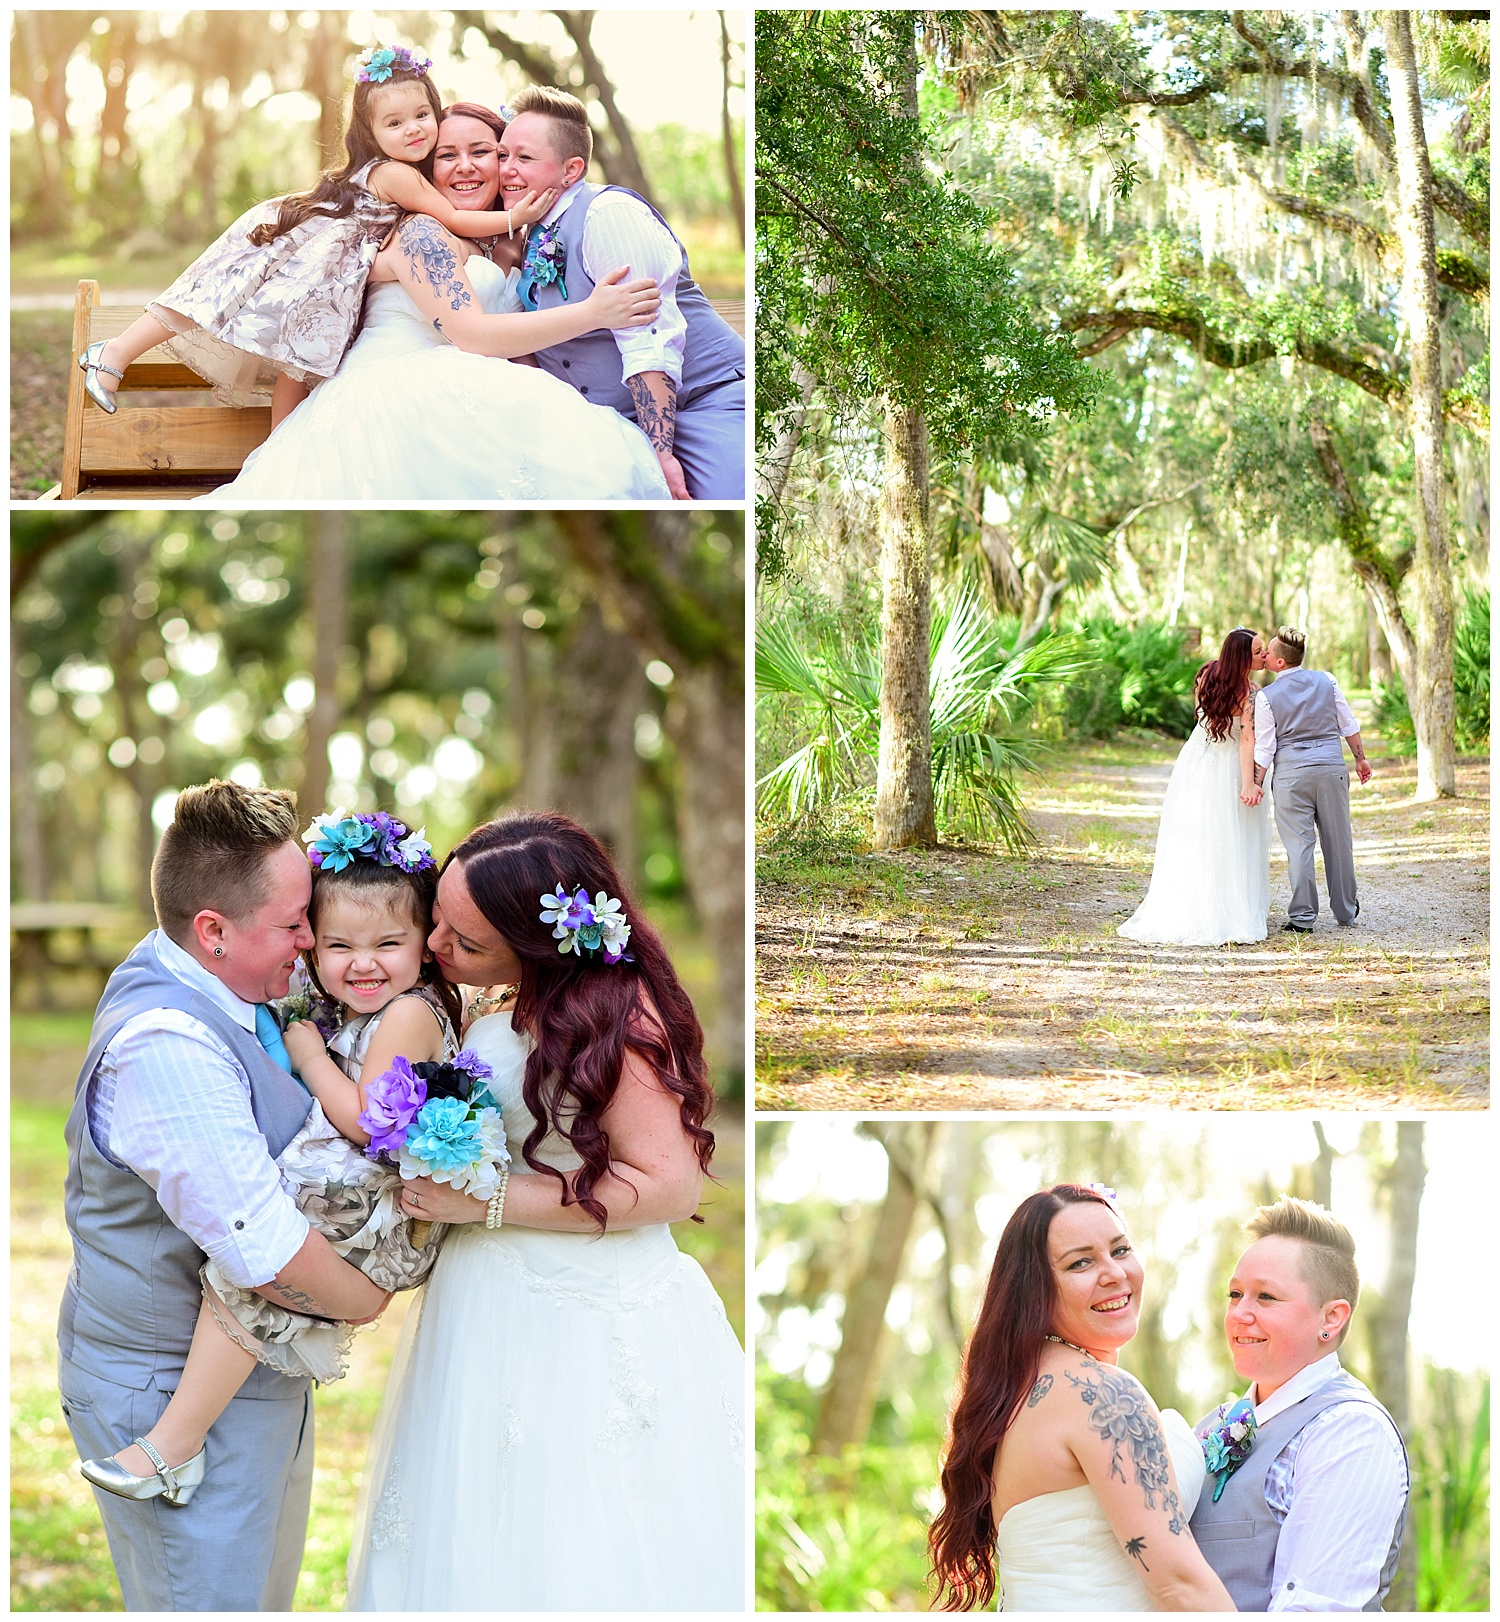 LGBTQ wedding at washington oaks garden